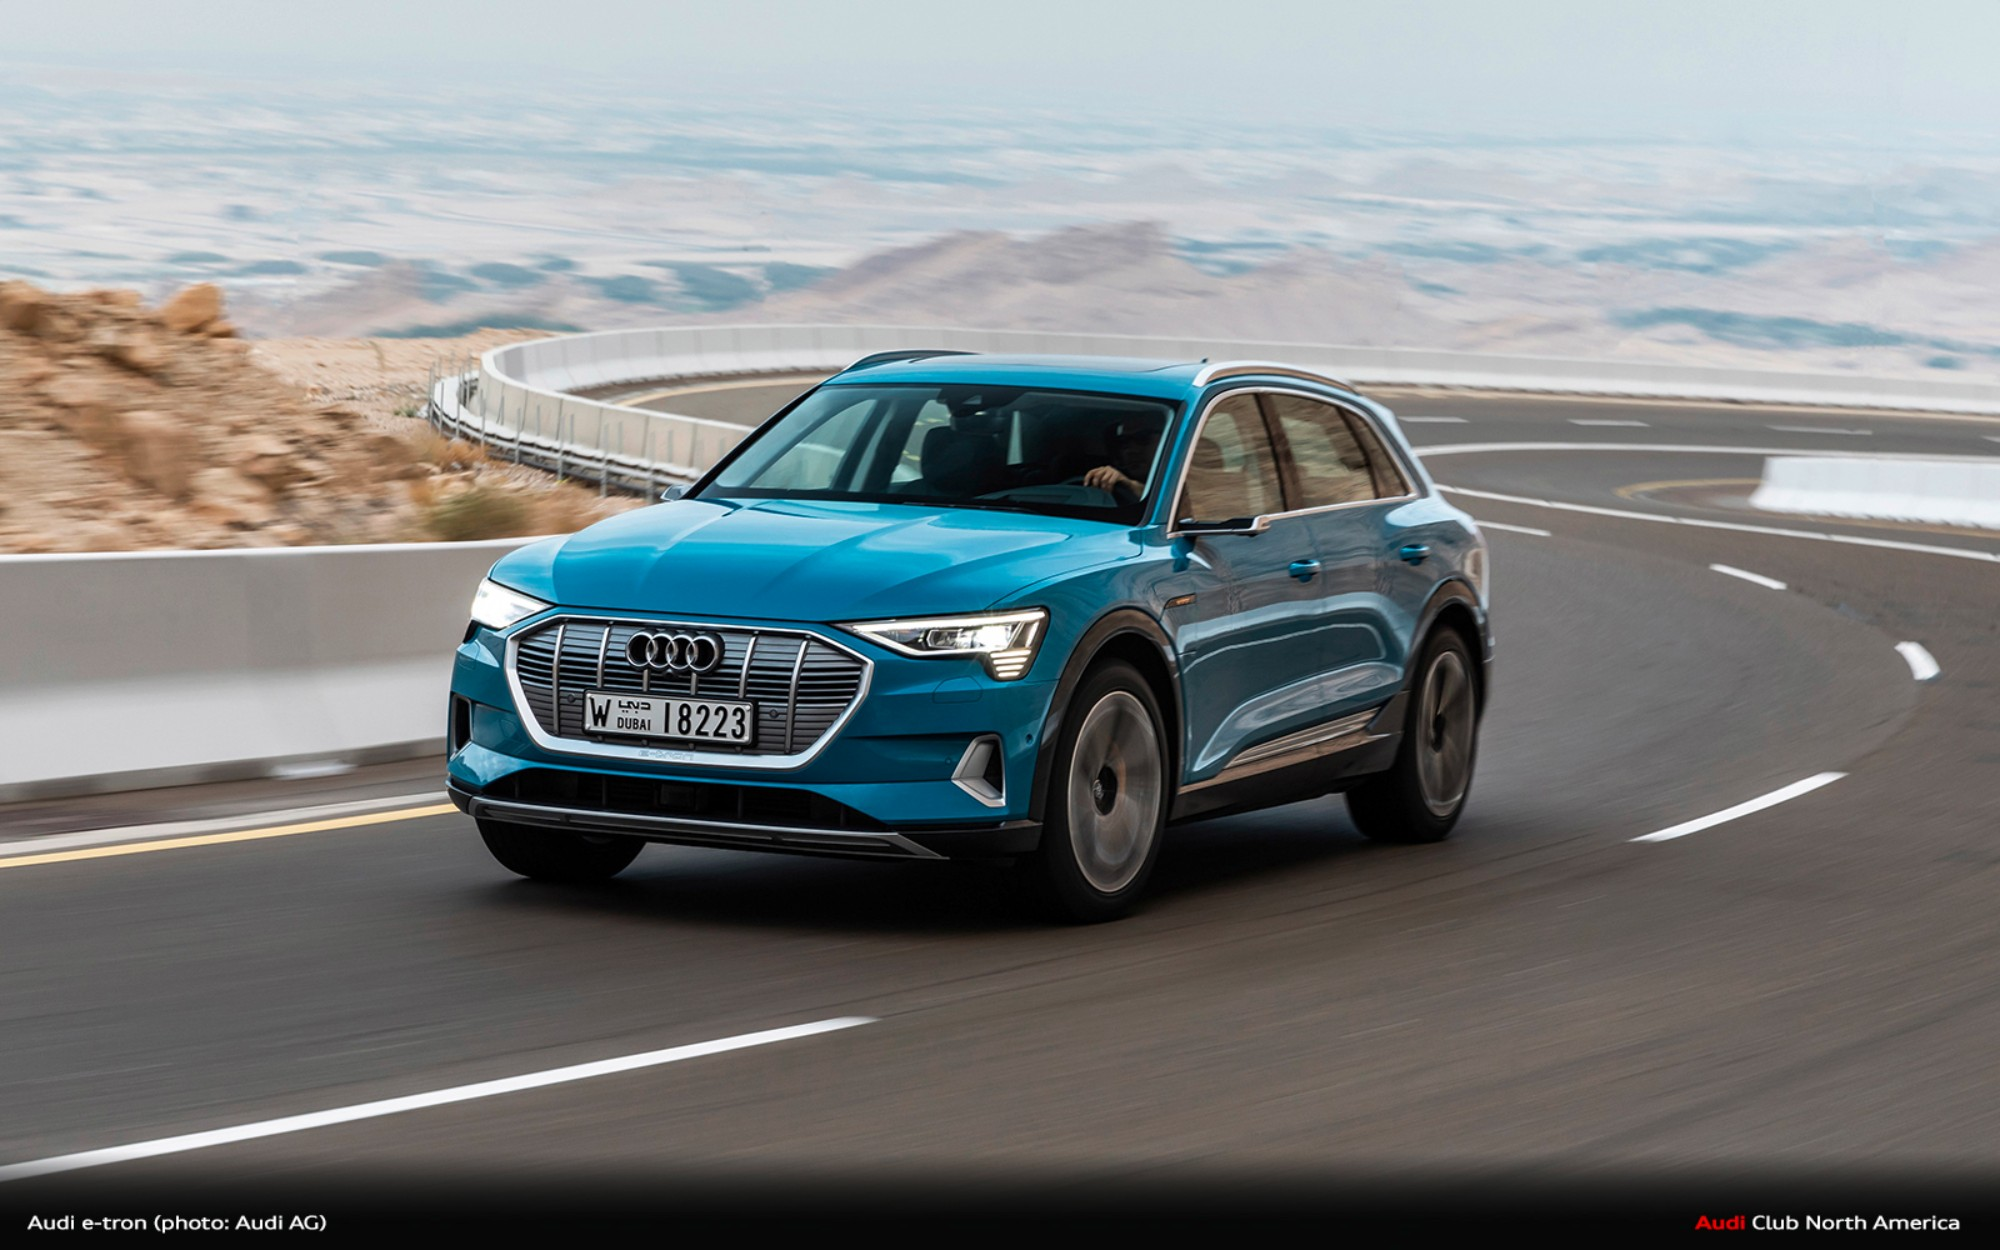 2019 Audi e-tron arrives next month: Fully electric SUV